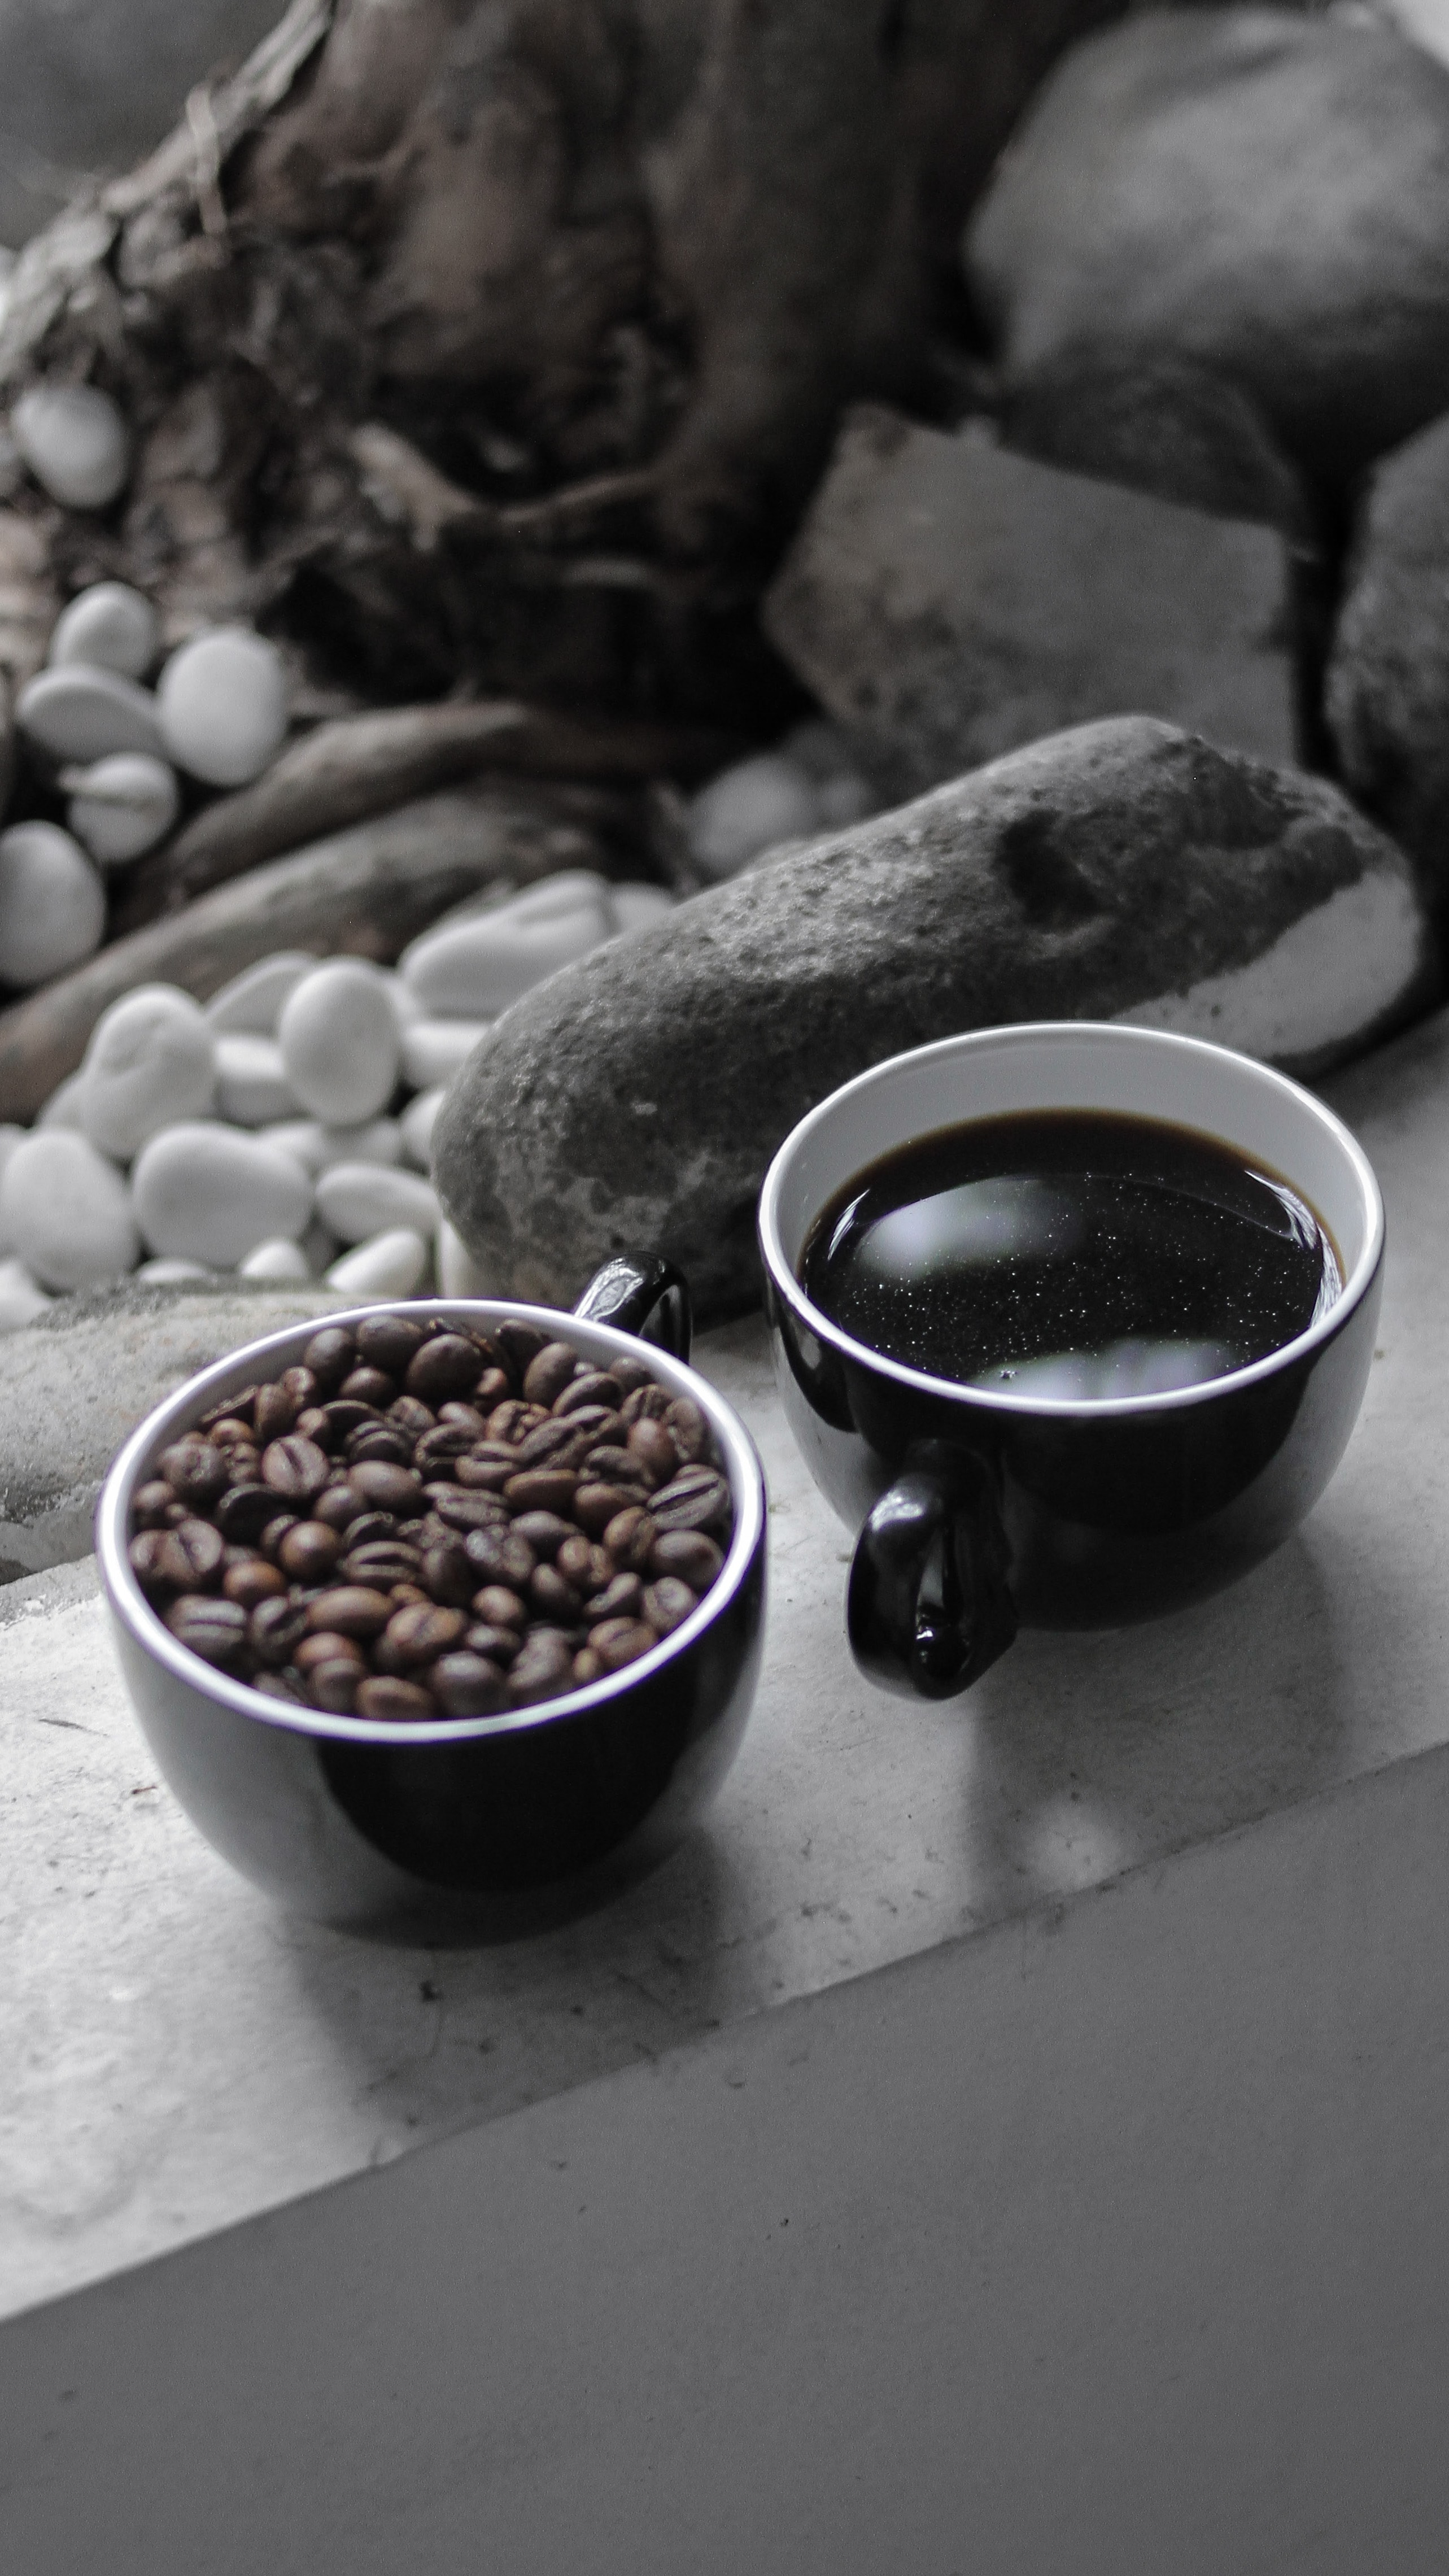 80102 download wallpaper Food, Cups, Coffee, Drink, Beverage, Coffee Beans screensavers and pictures for free